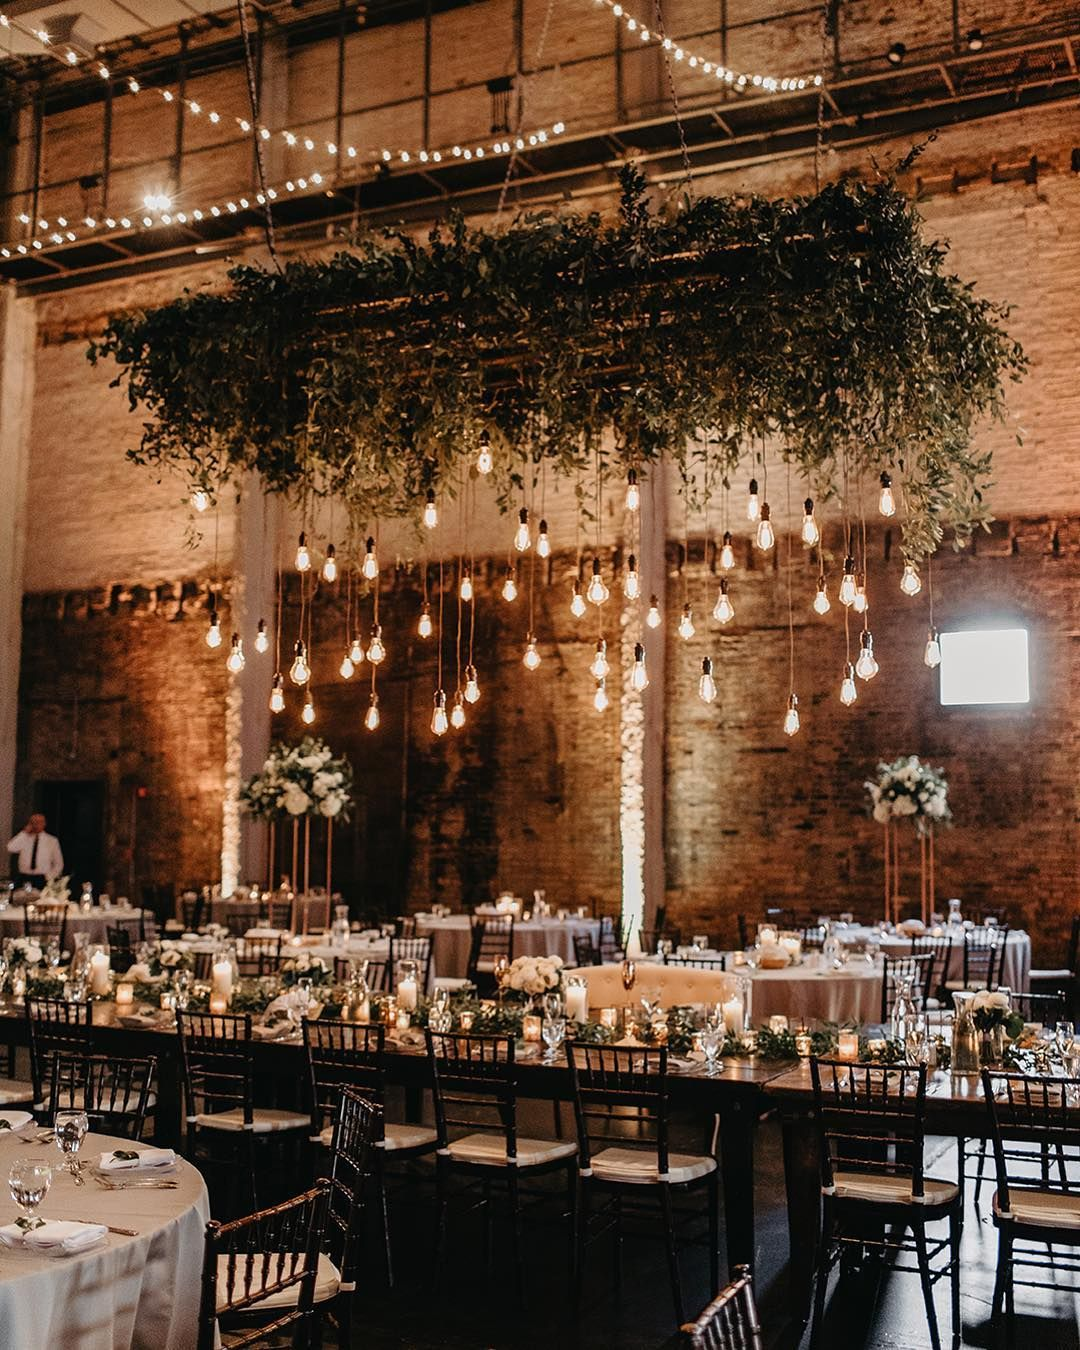 7 Barn Wedding Decoration Ideas For A Spring Wedding: Top 20 Wedding Lighting Ideas You Can Steal